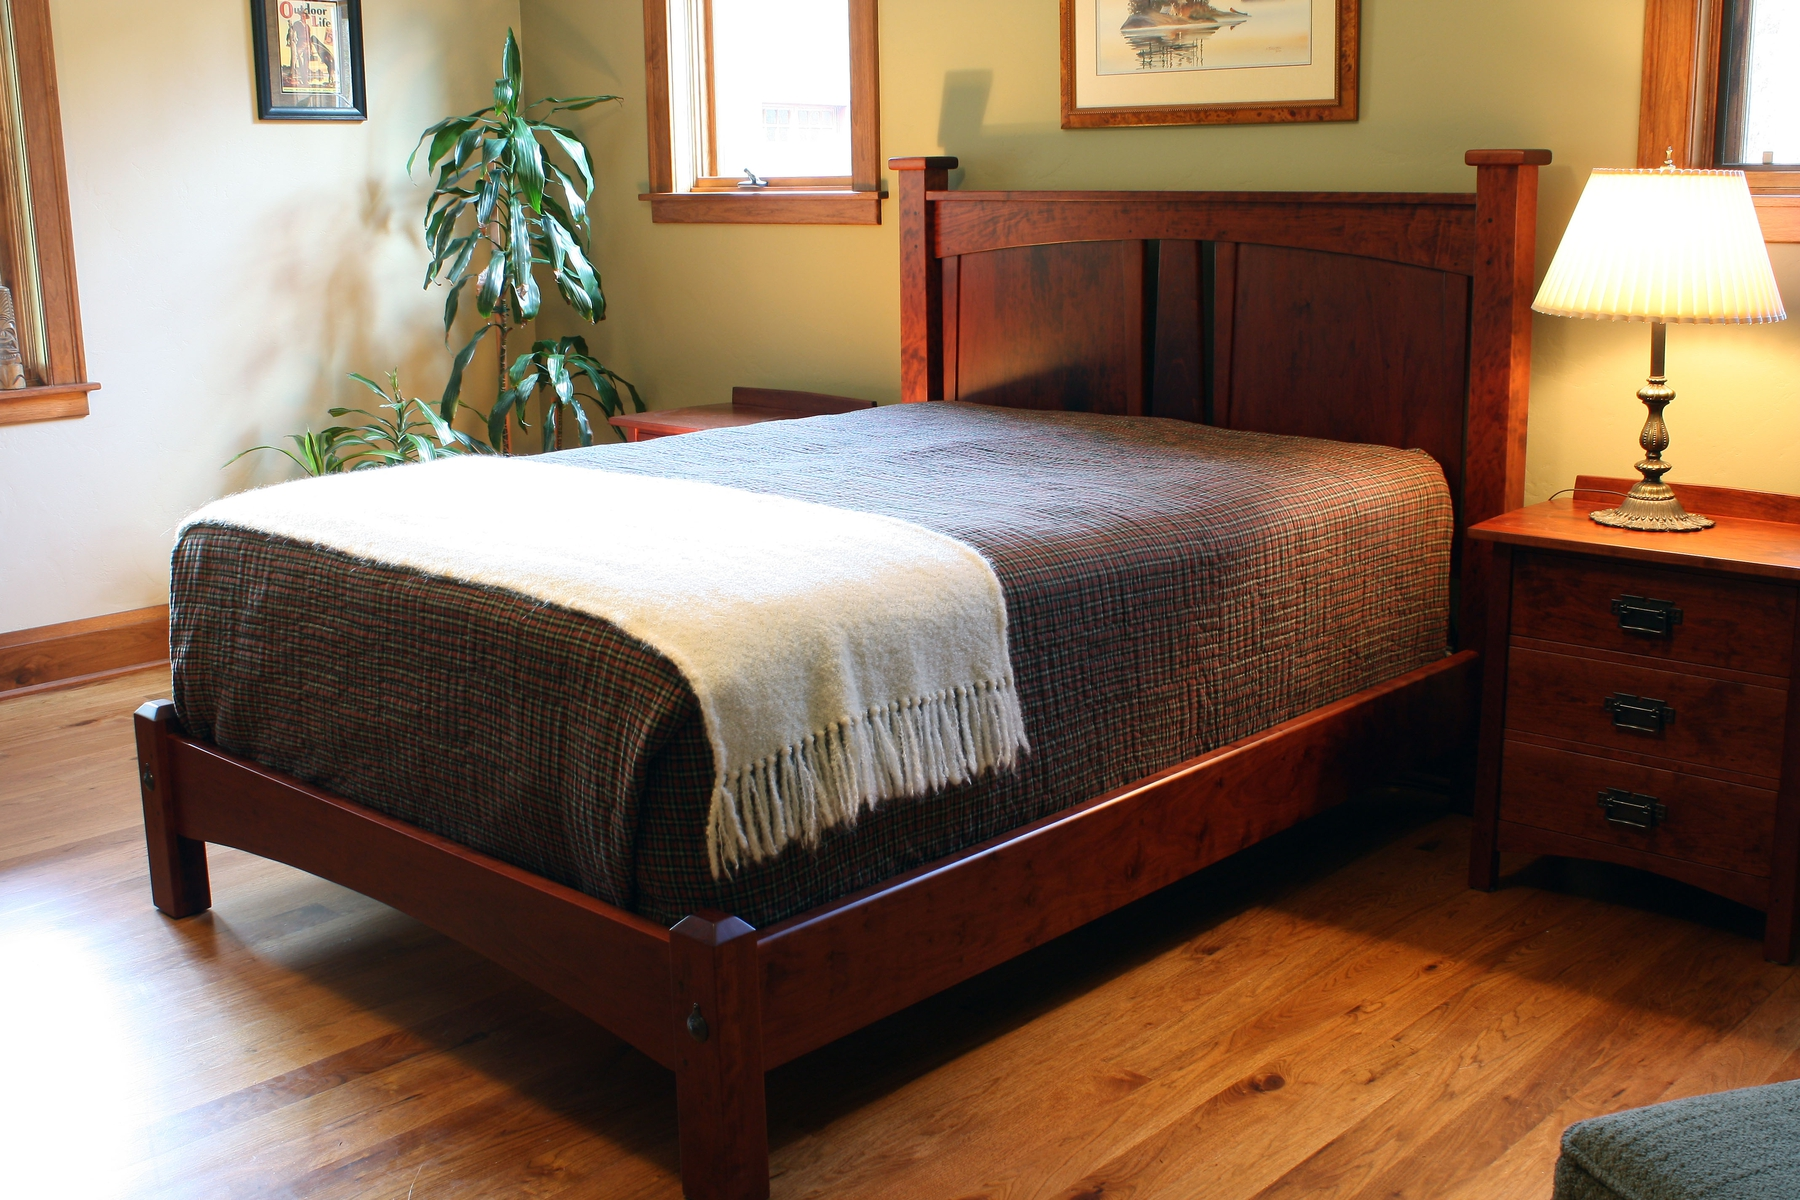 6bSjVrAlRtOBS9S79ZW0_Bungalow-Style-Headboard-by-Montana-Cabinet-Canoe-at-CustomMade.com_.jpg